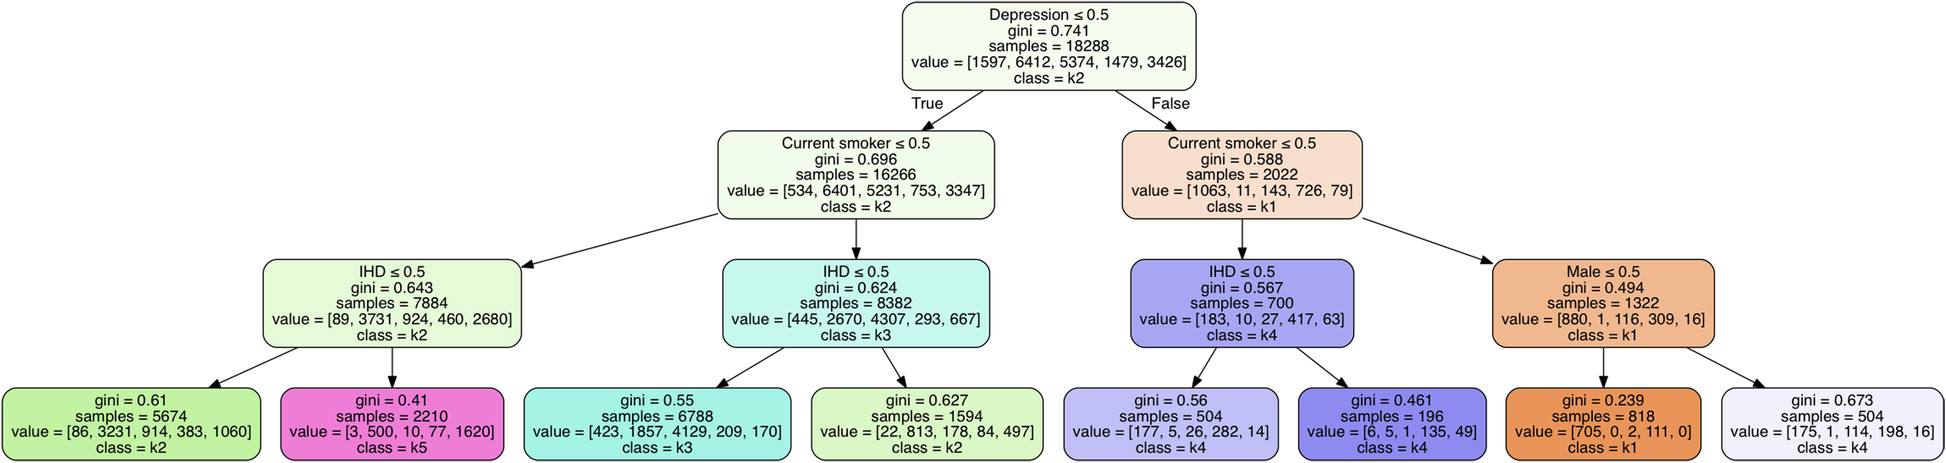 Identifying clinically important COPD sub-types using data-driven